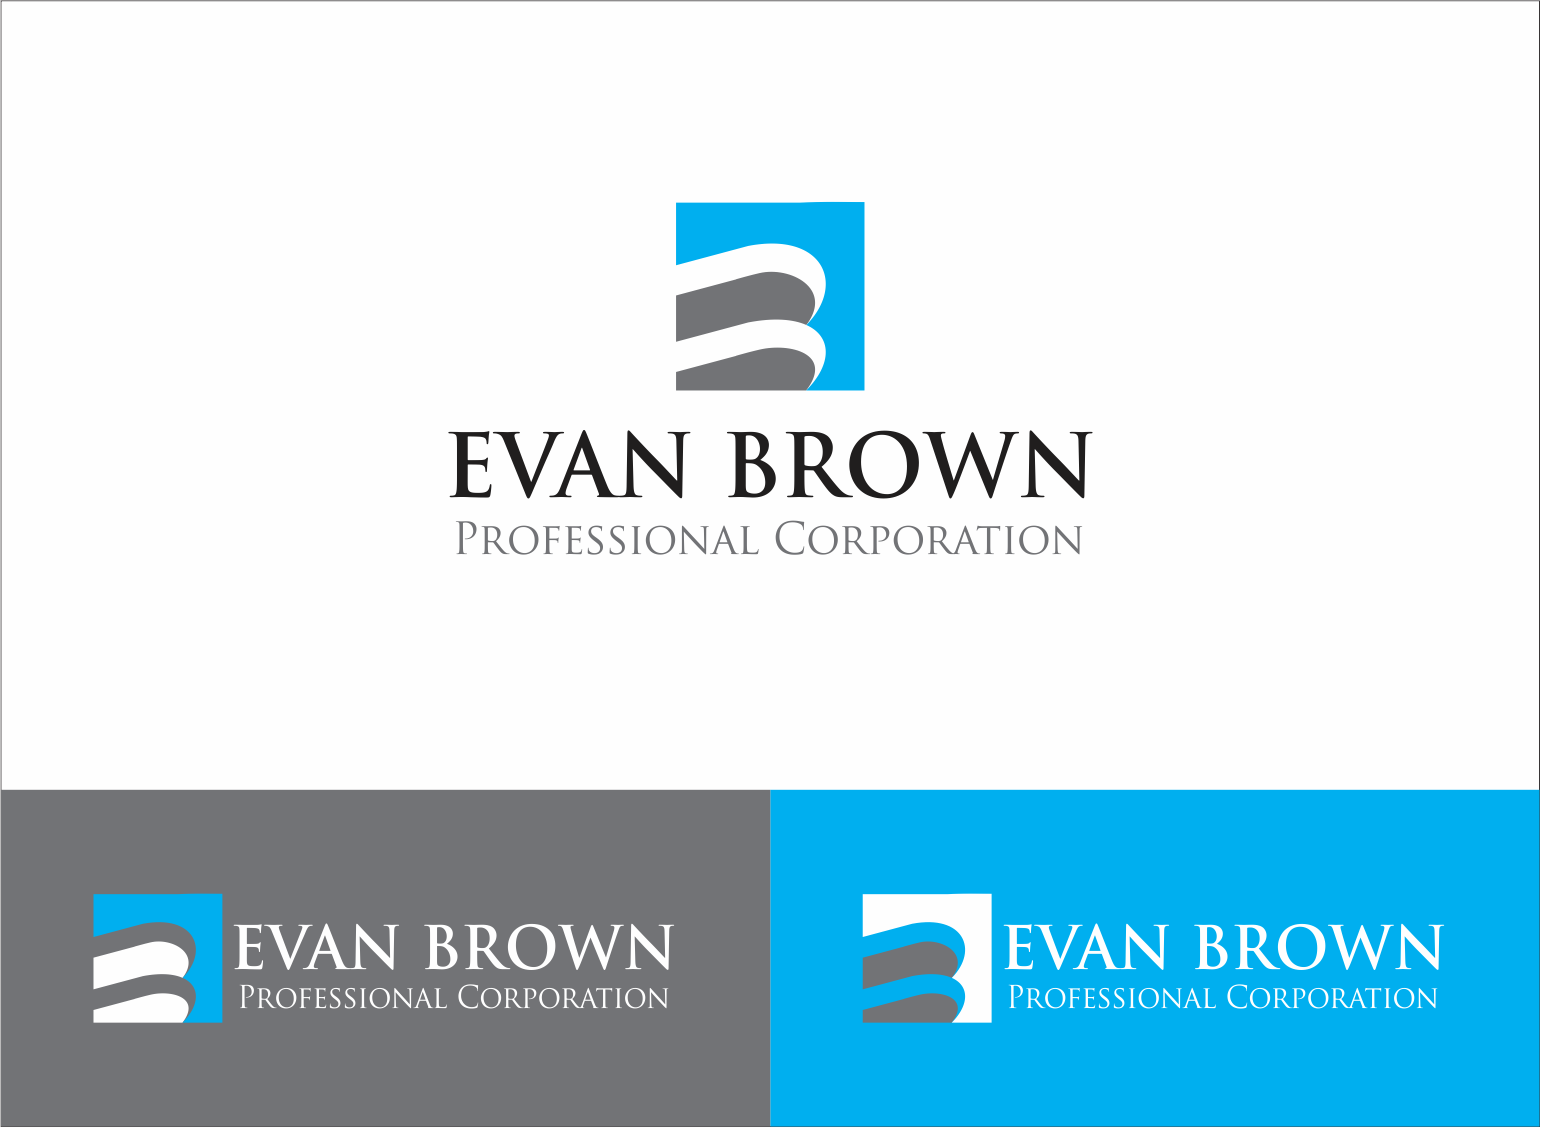 Logo Design by Armada Jamaluddin - Entry No. 41 in the Logo Design Contest Inspiring Logo Design for Evan Brown Professional Corporation.